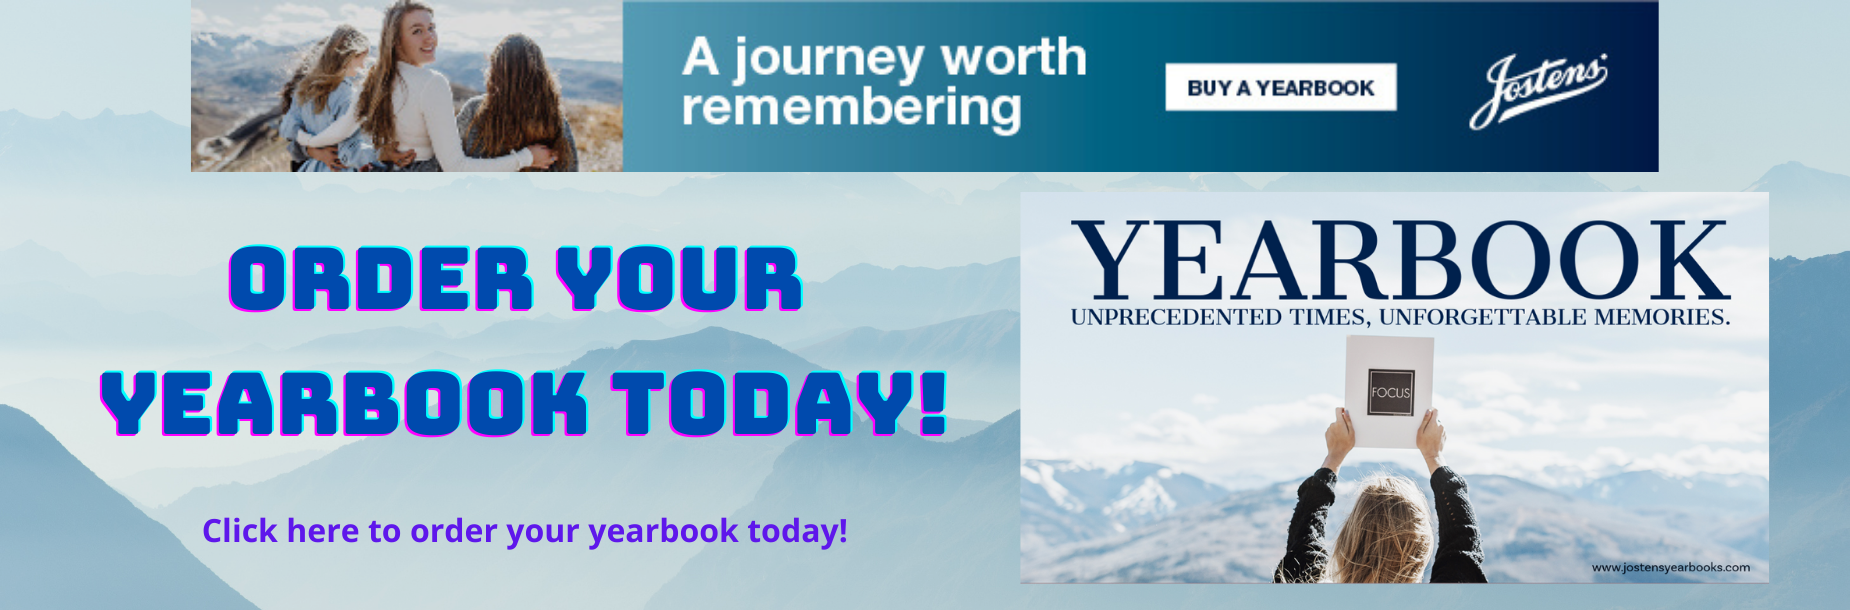 Order your yearbook today